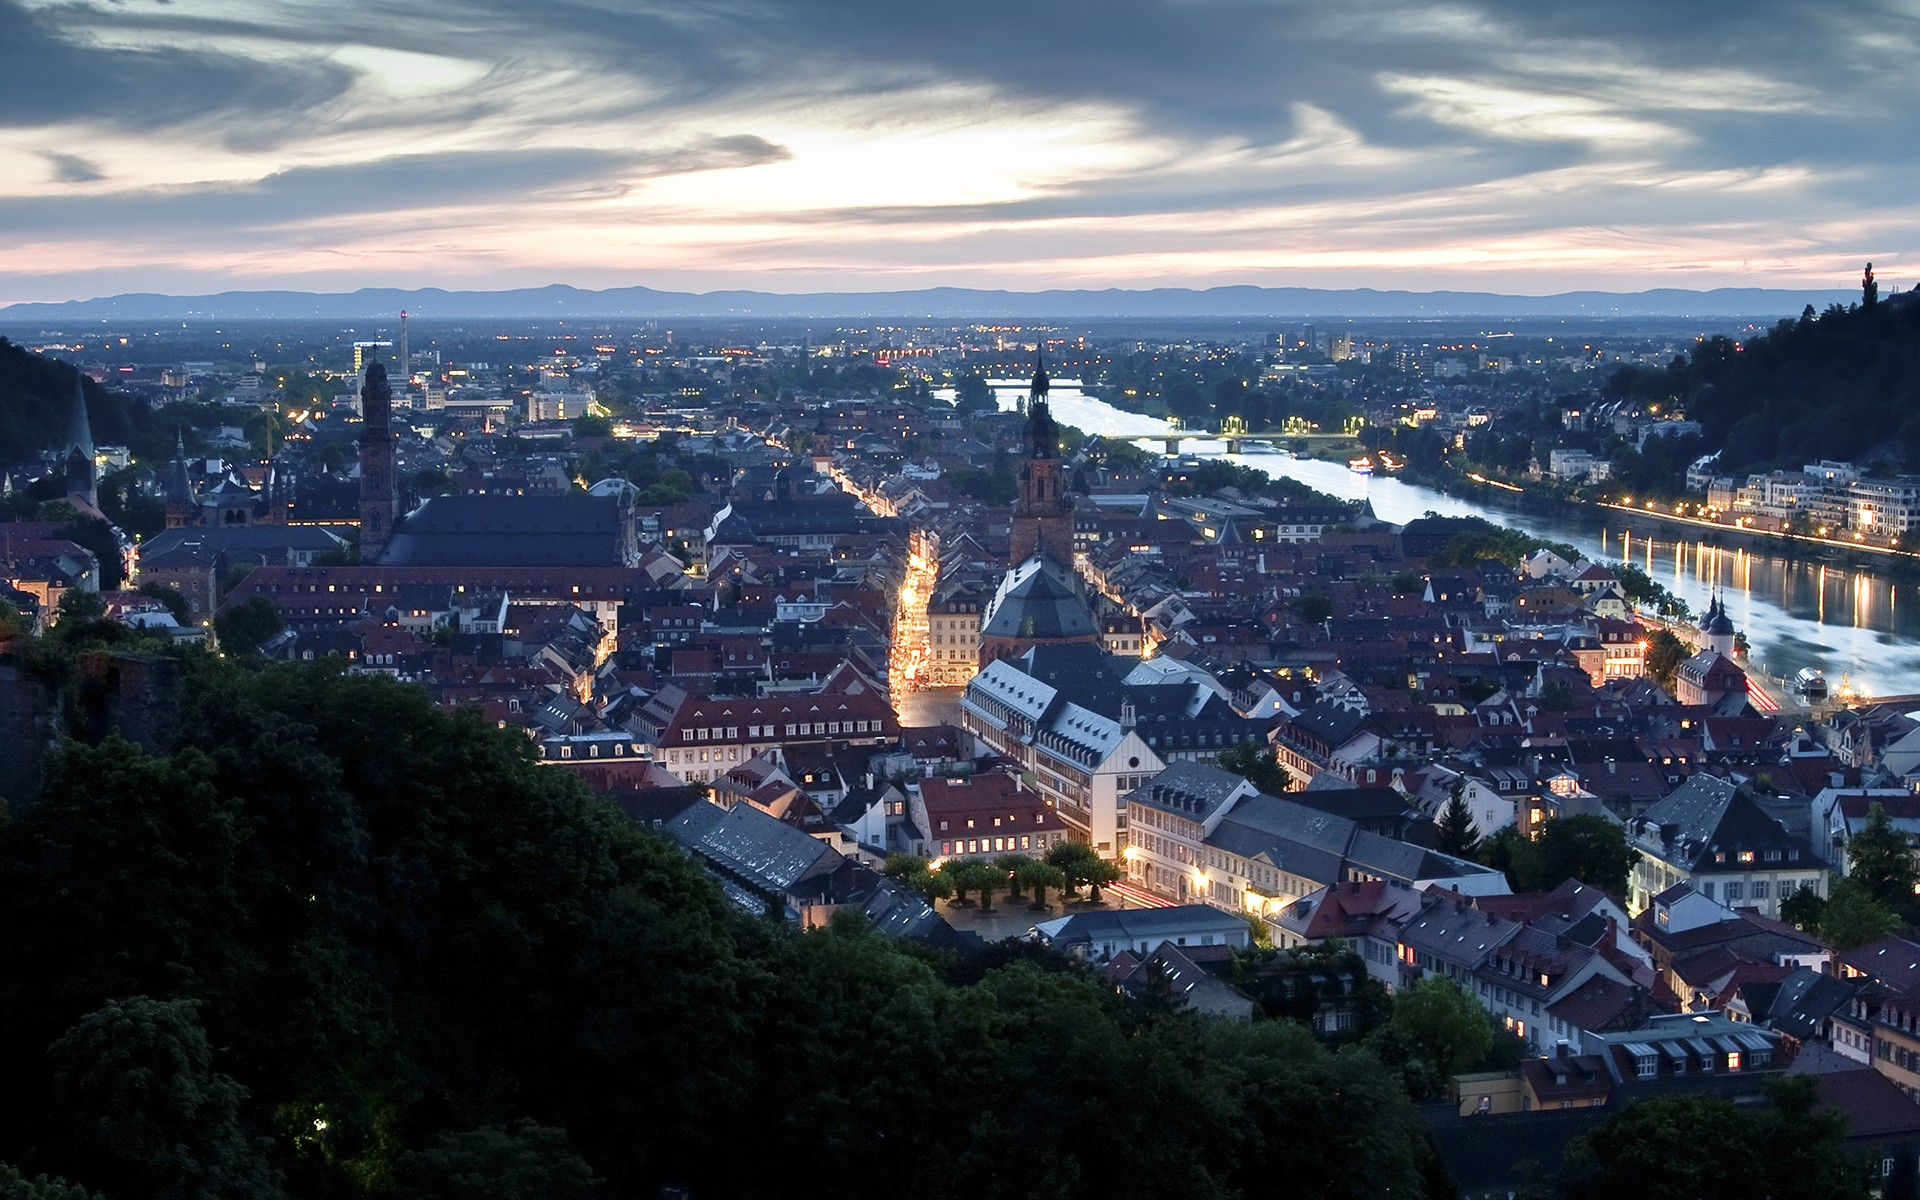 cityscapes Germany Heidelberg wallpaper background 1920x1200